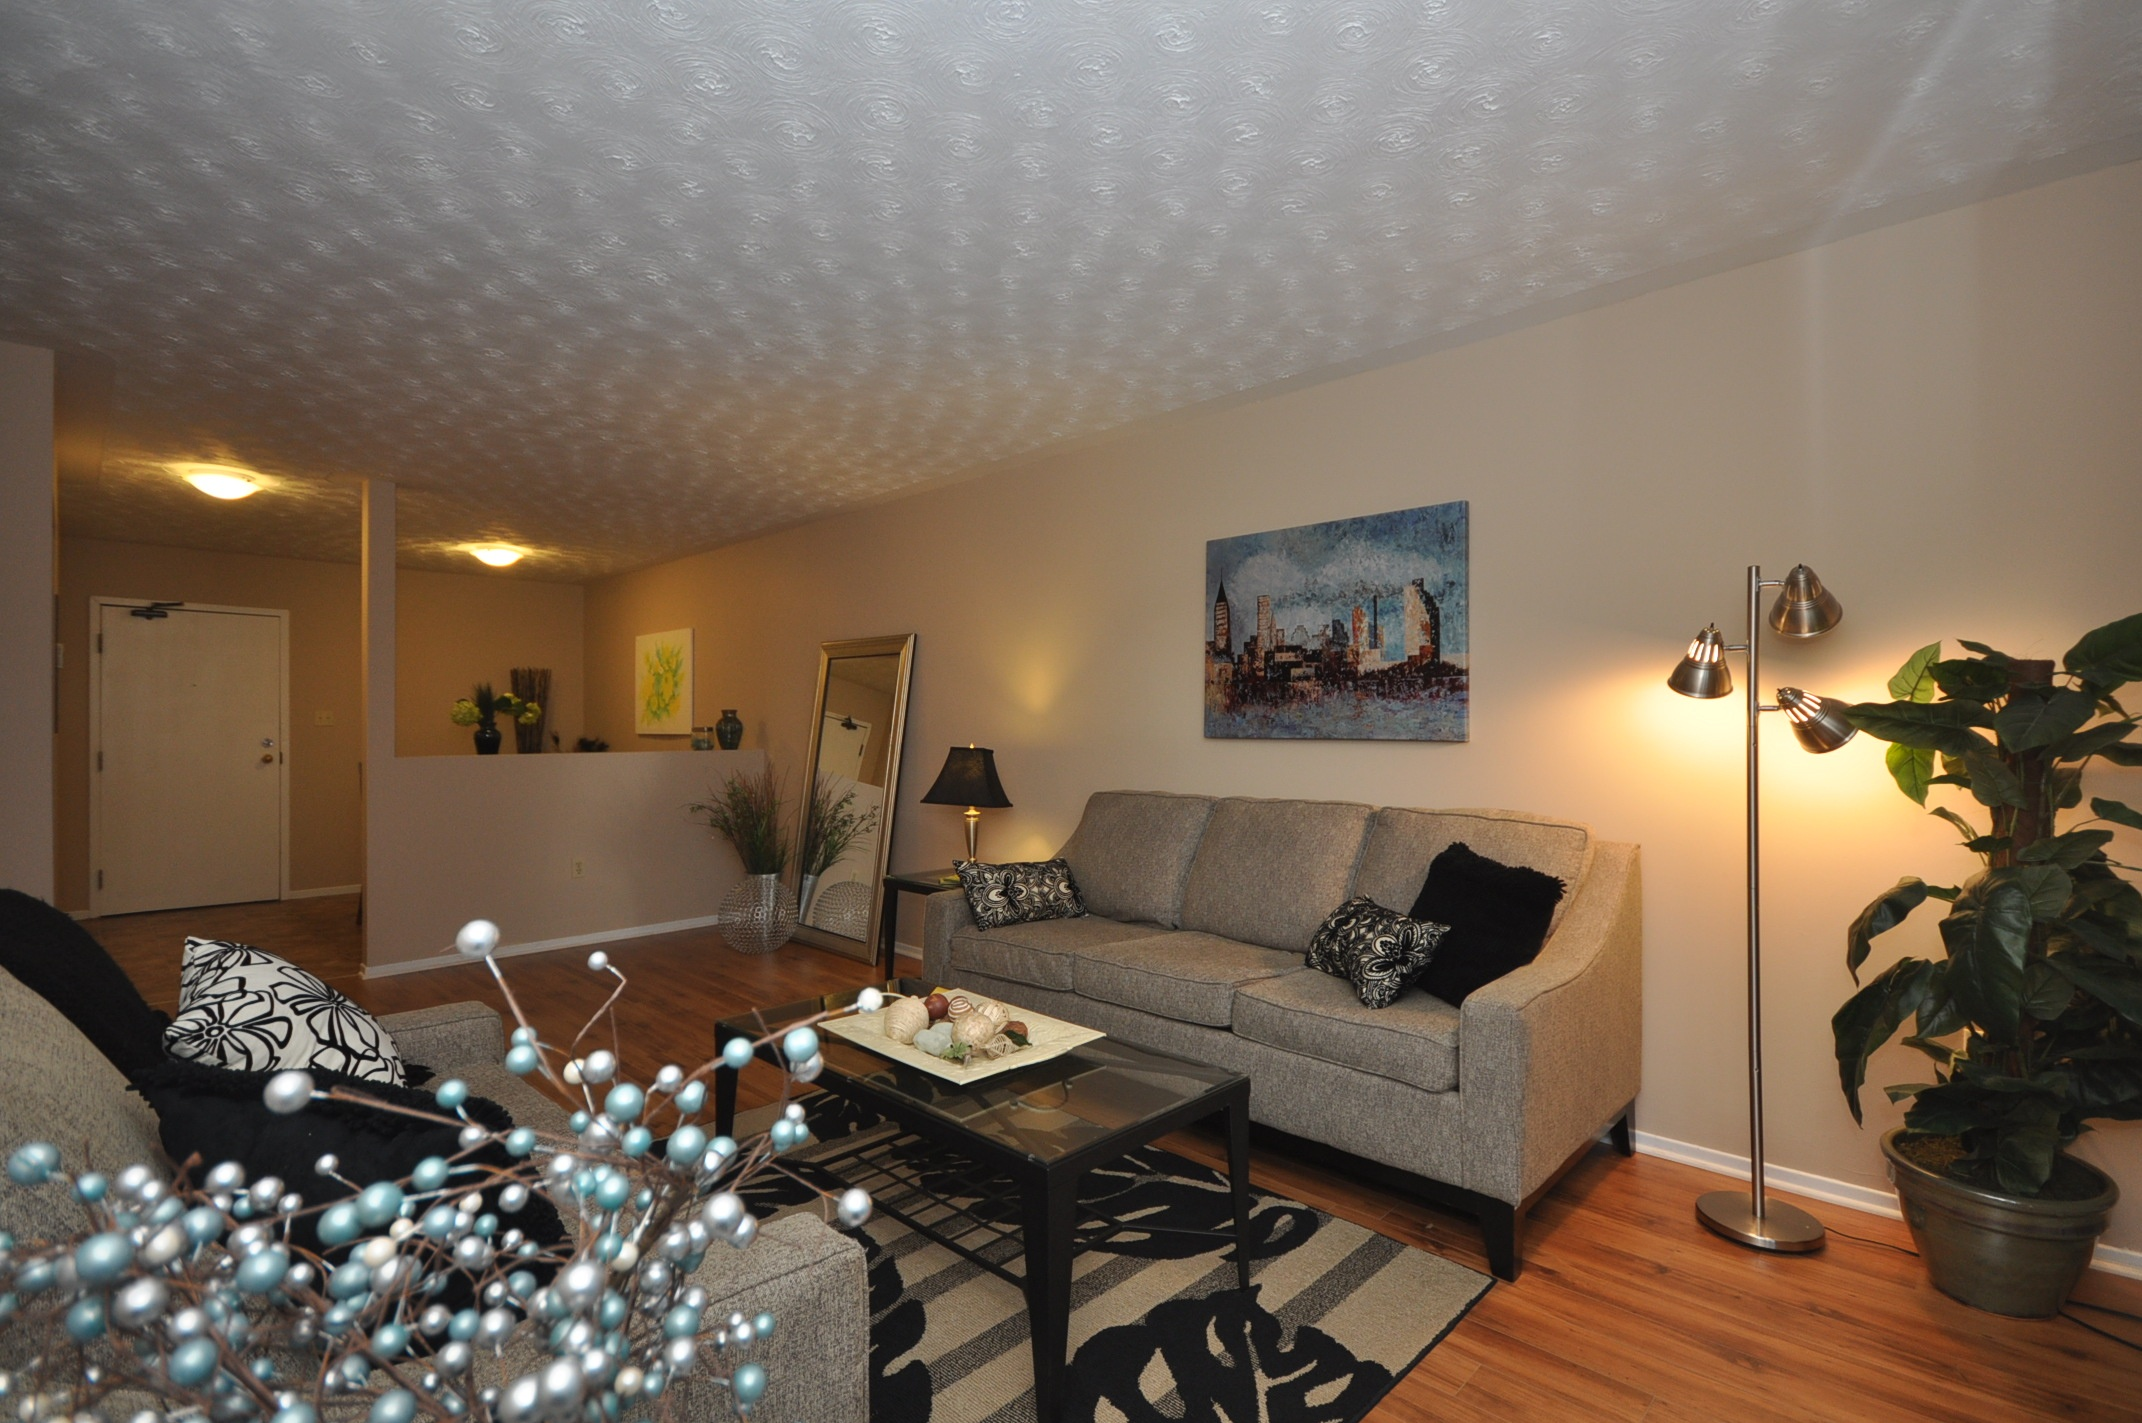 9-54 Paige Plaza in Sackville, NS is Now Available